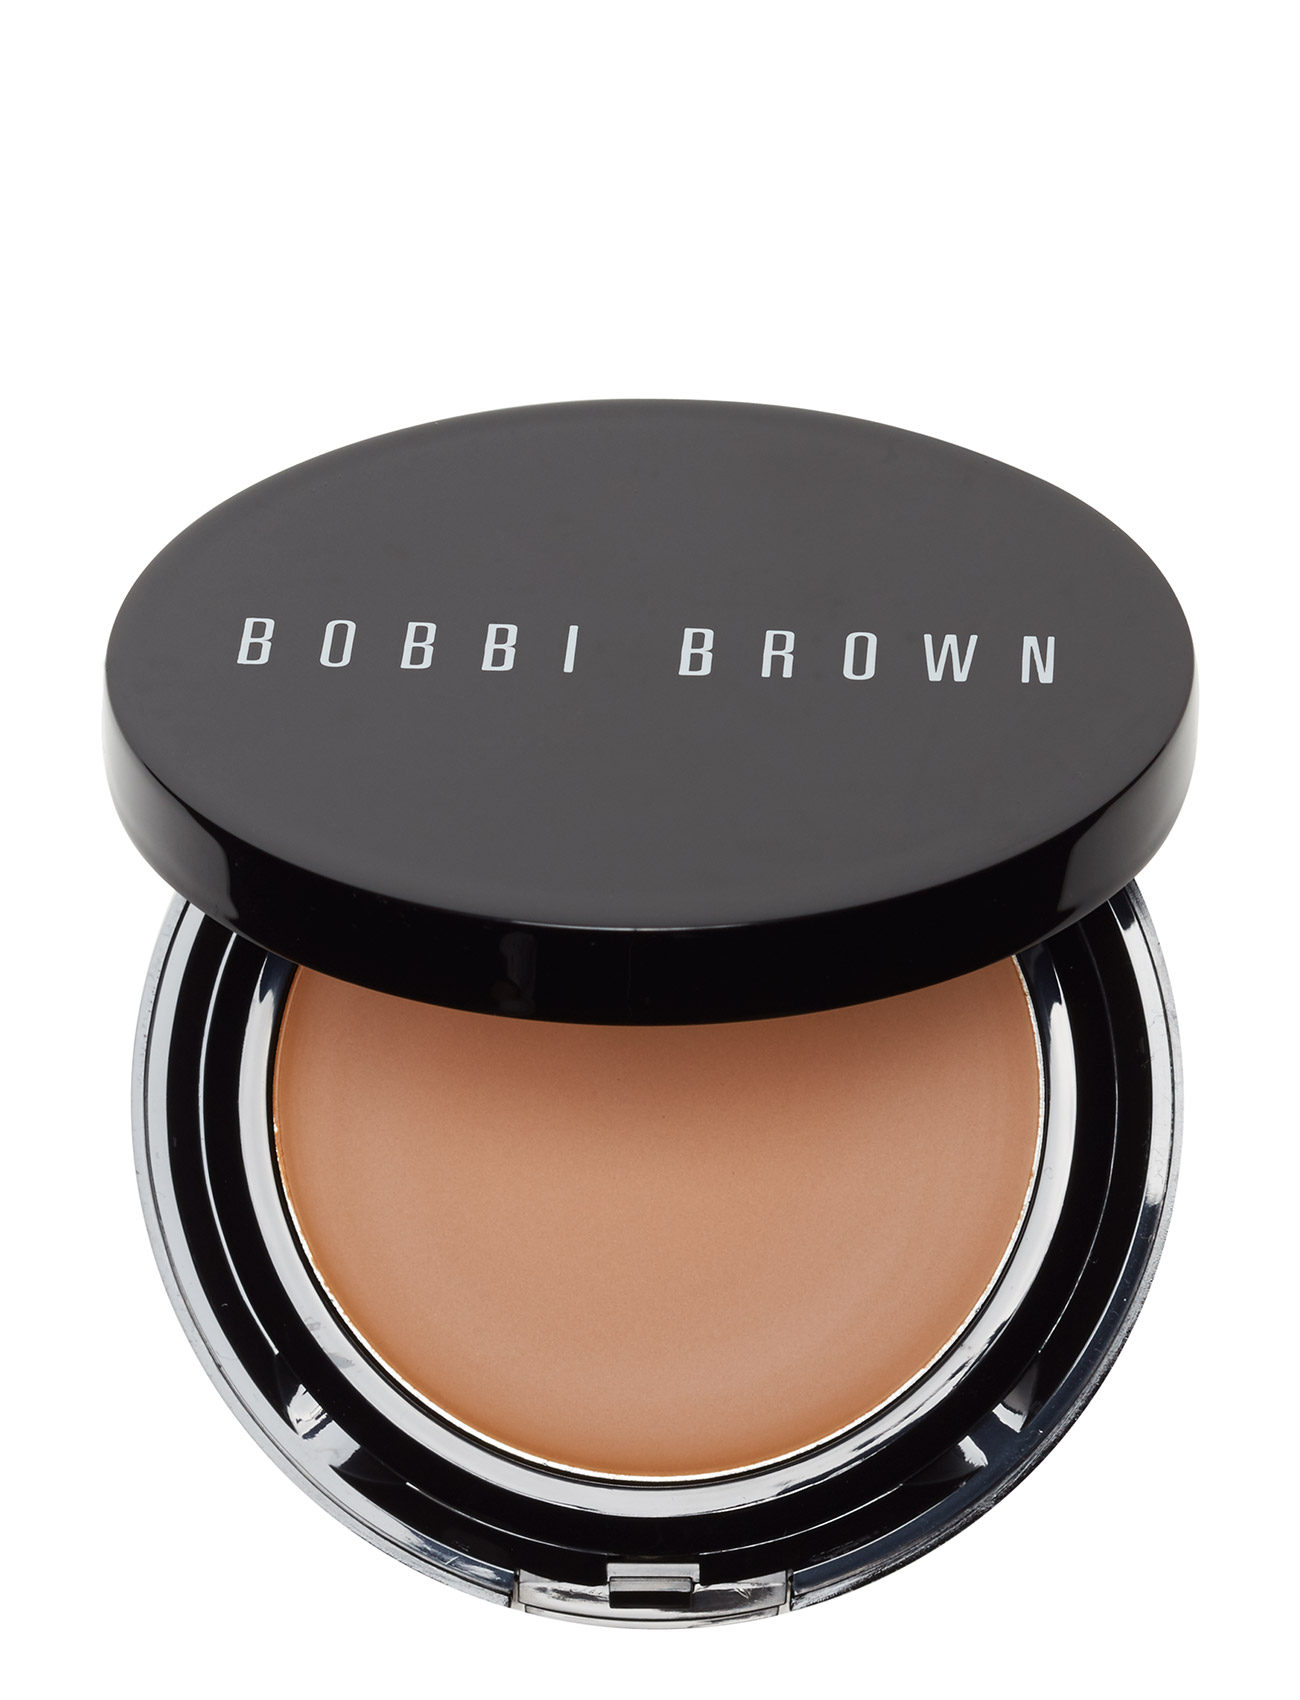 bobbi brown – Long-wear even finish compact foundation, beige 3 fra boozt.com dk